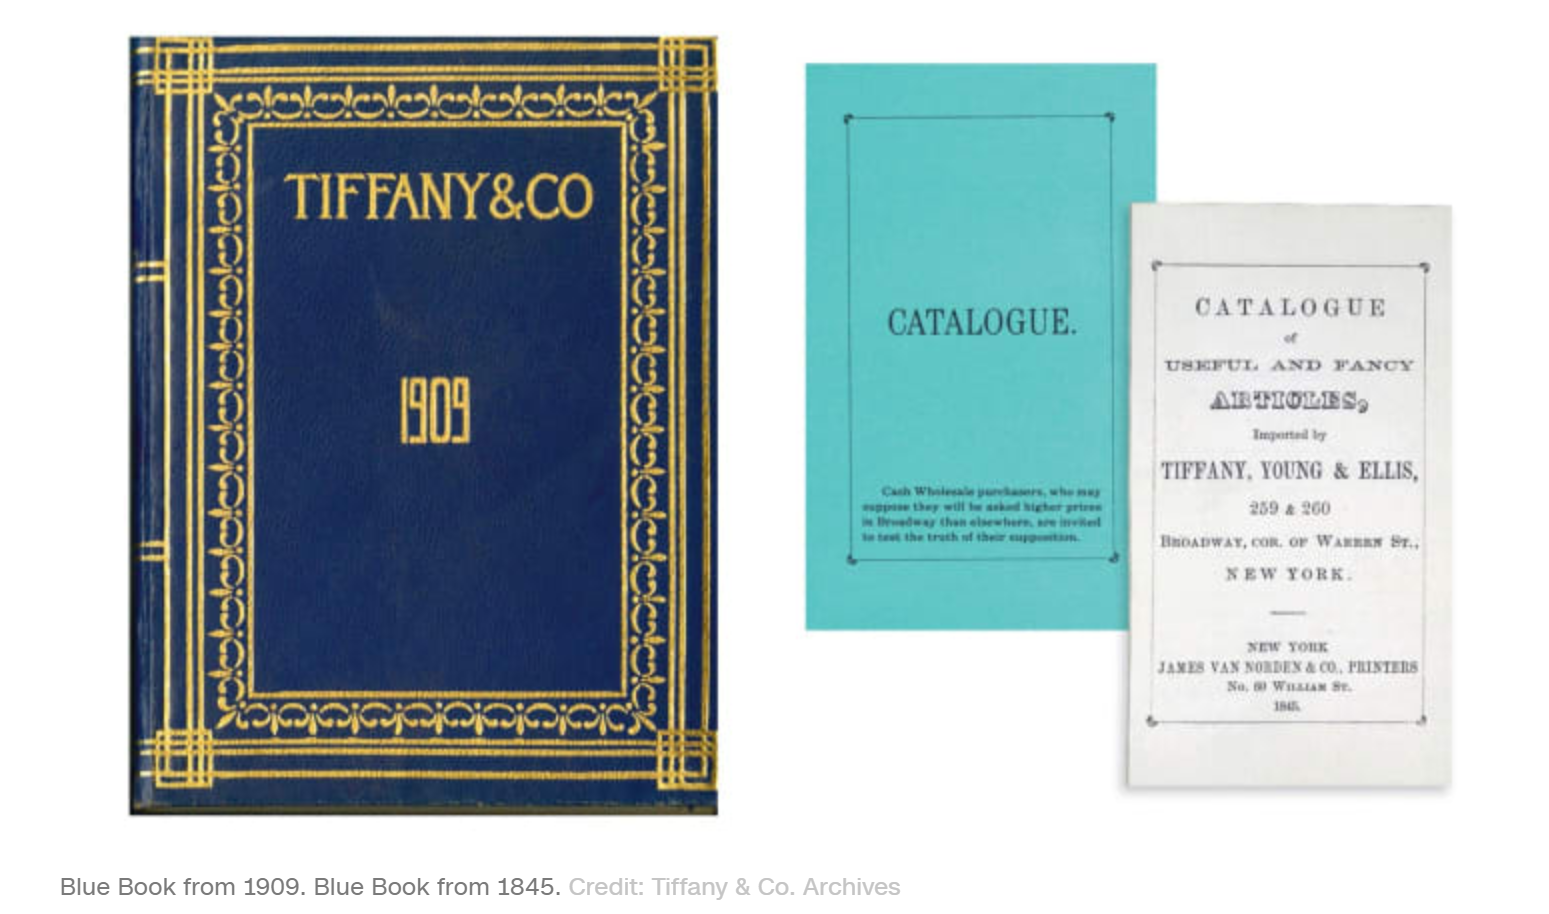 tiffany and co's blue book is a great example for inbound marketing agencies